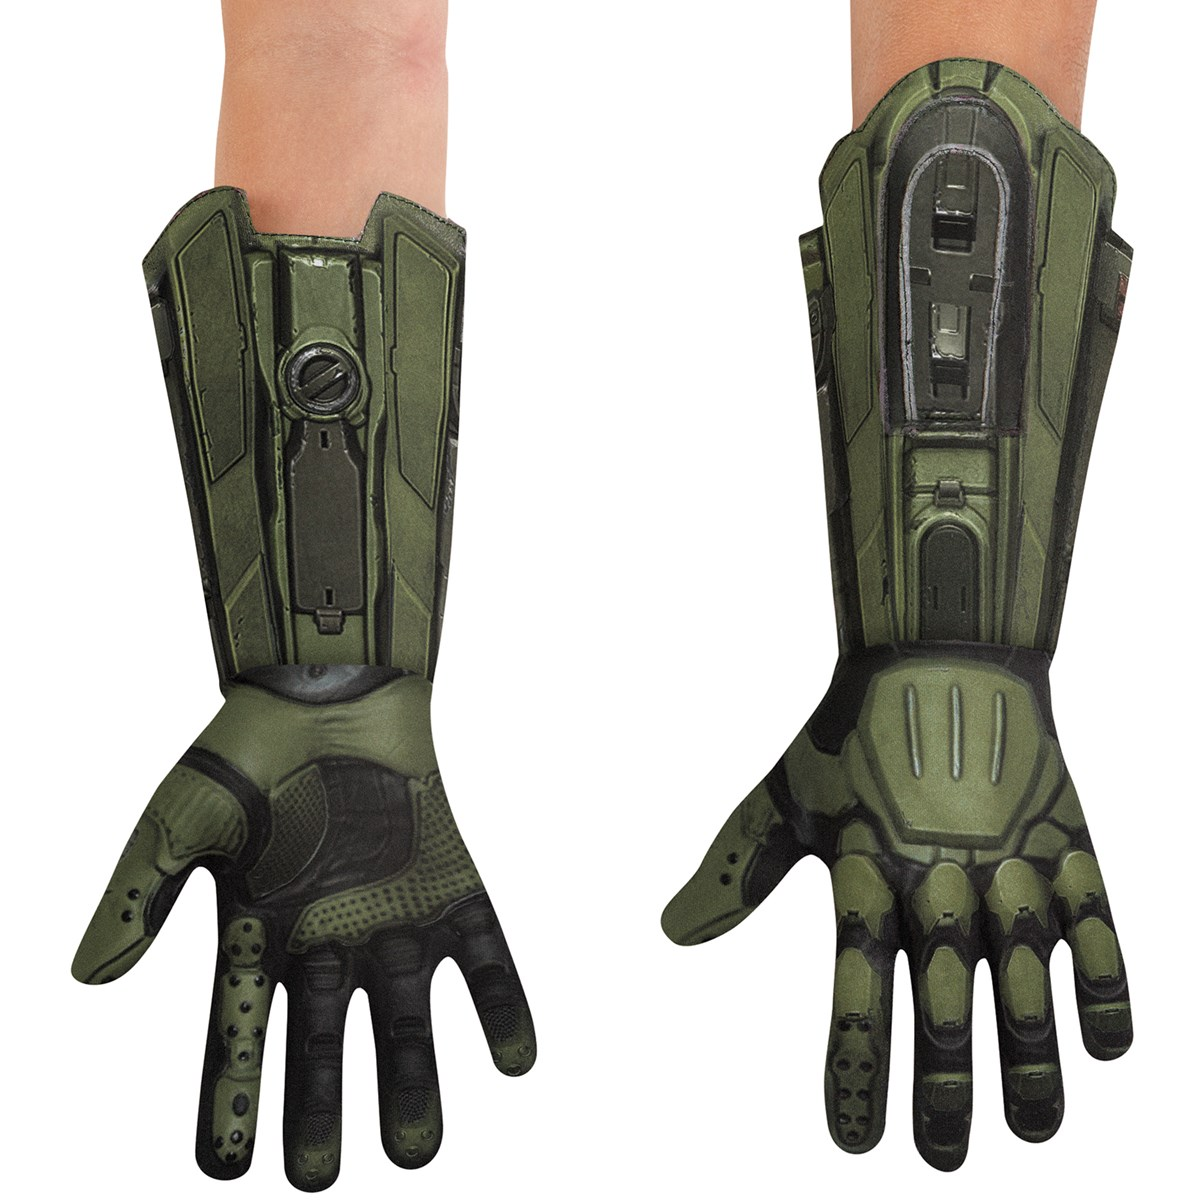 Halo: Deluxe Master Chief Gloves For Kids | BuyCostumes.com